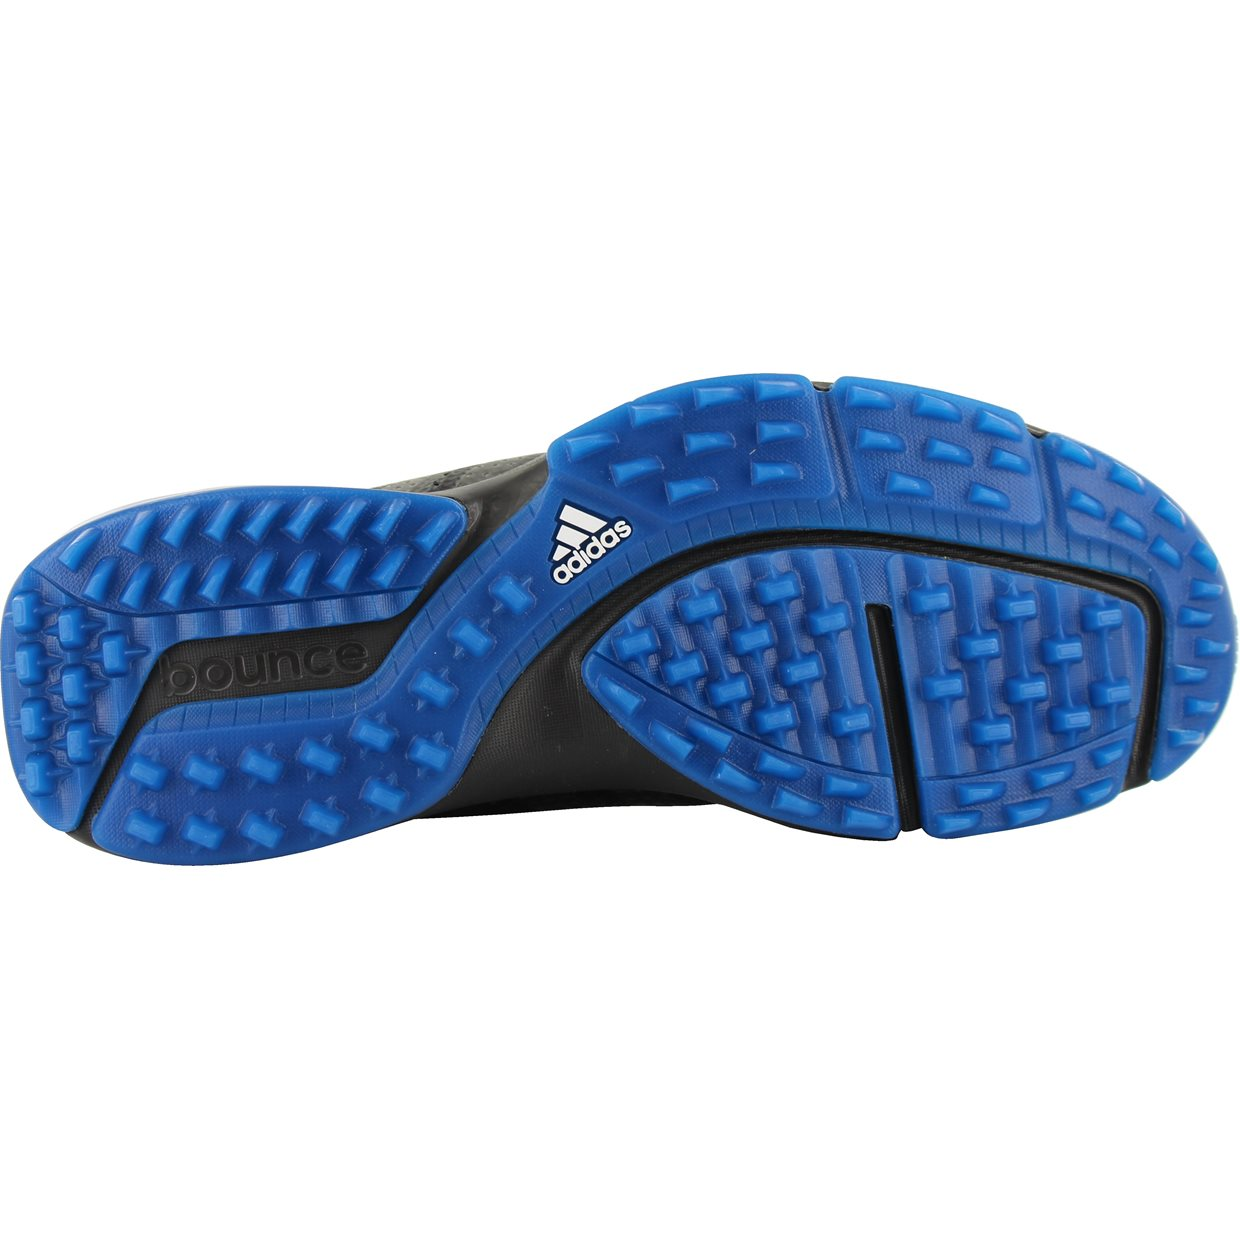 Adidas  Traxion Spikeless Golf Shoes Review